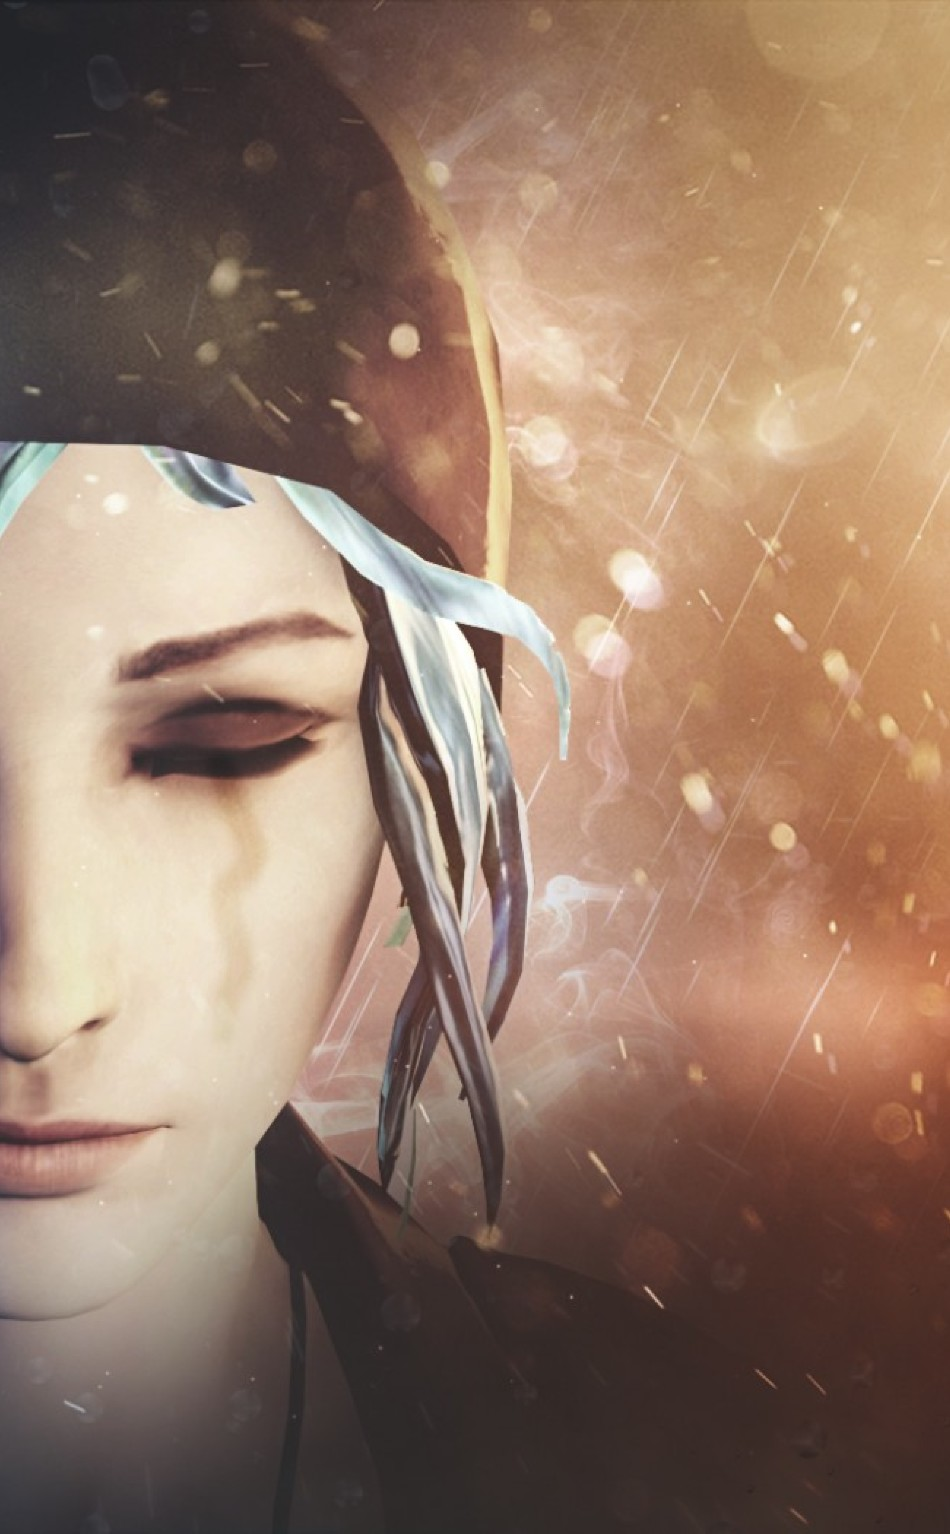 Life Is Strange Wallpaper Iphone Chloe Price 342011 Hd